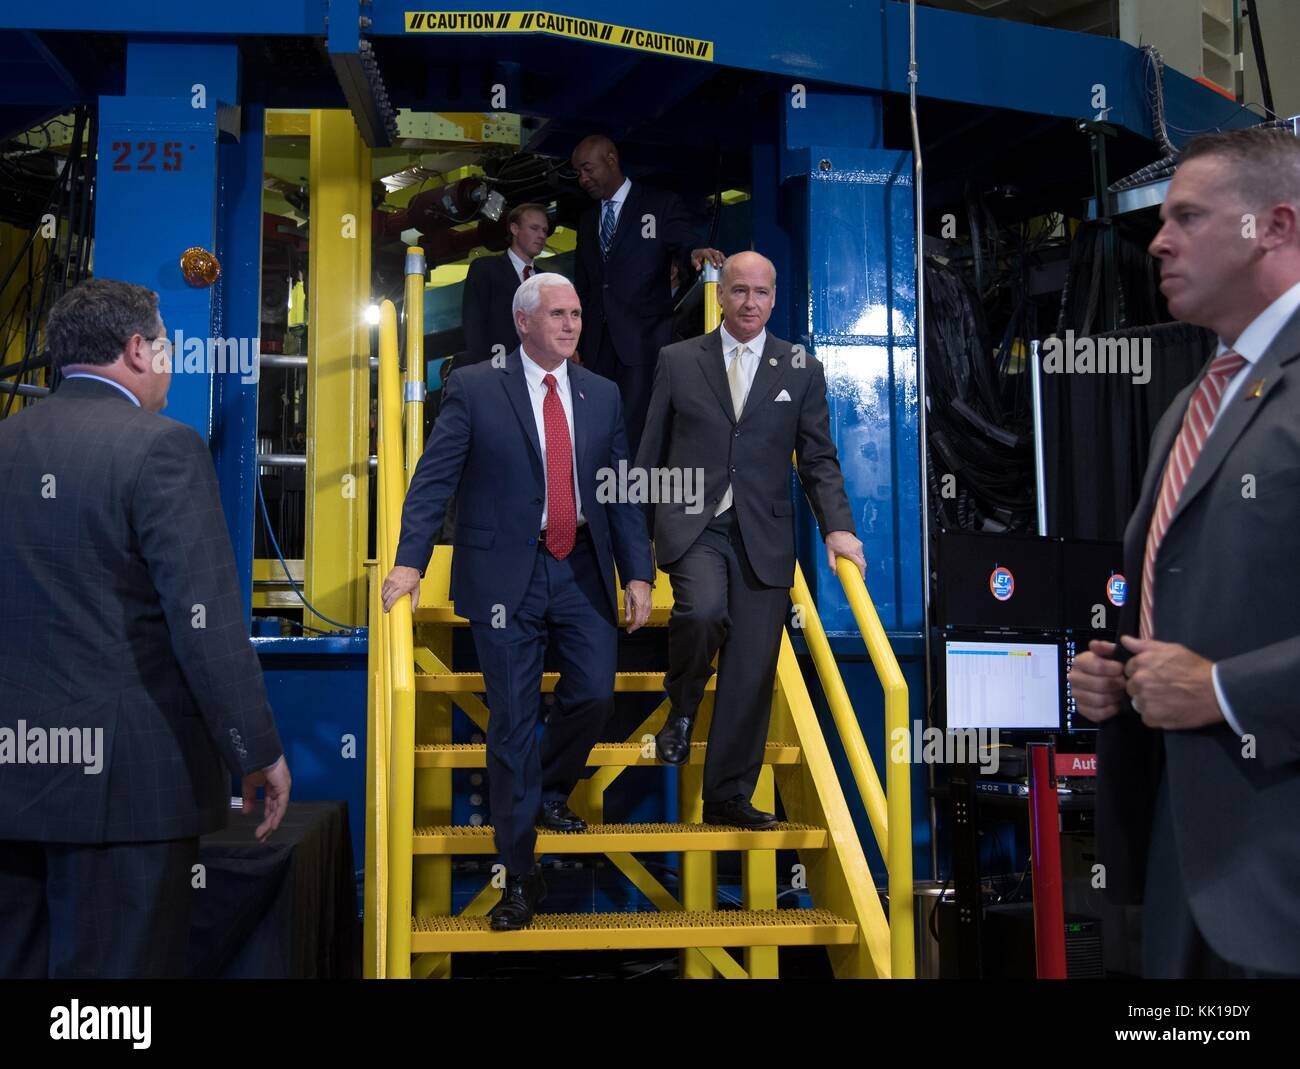 U.S. Vice President Mike Pence (left) and U.S. Alabama Representative Robert Aderholt tour the Space Launch System - Stock Image